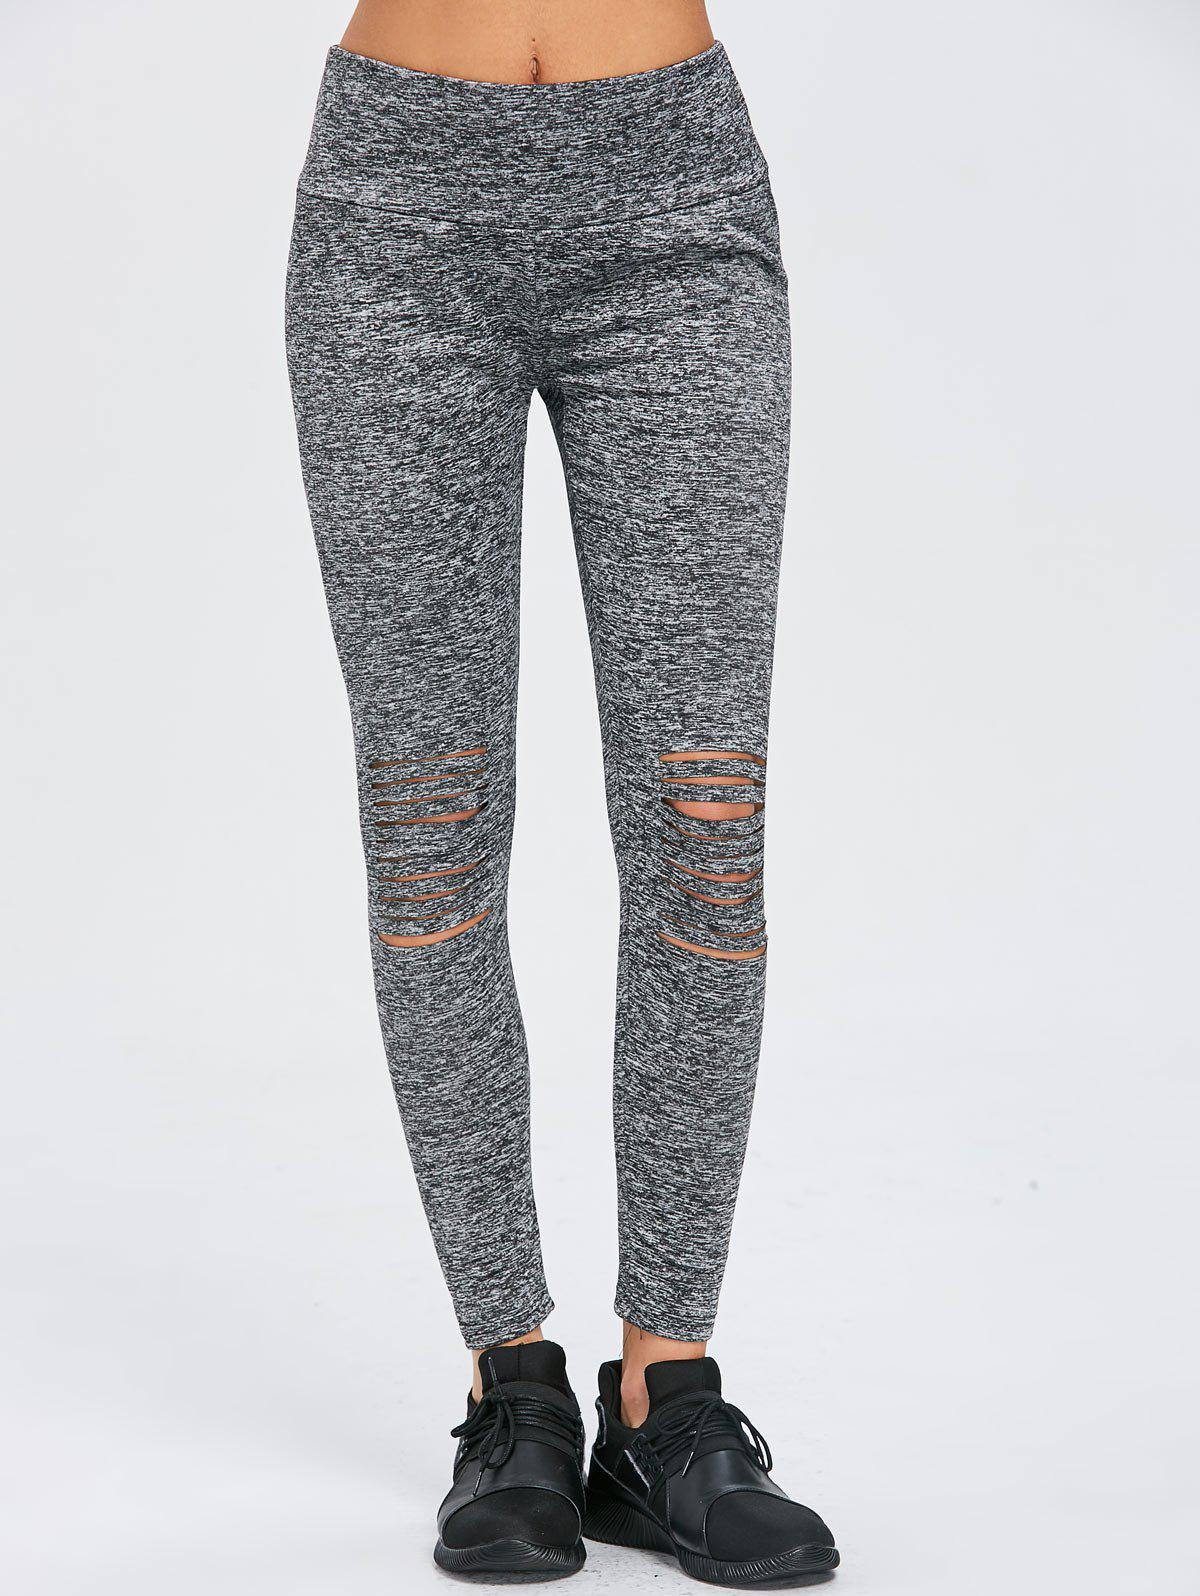 Skinny Distressed Sports Leggings - GRAY XL